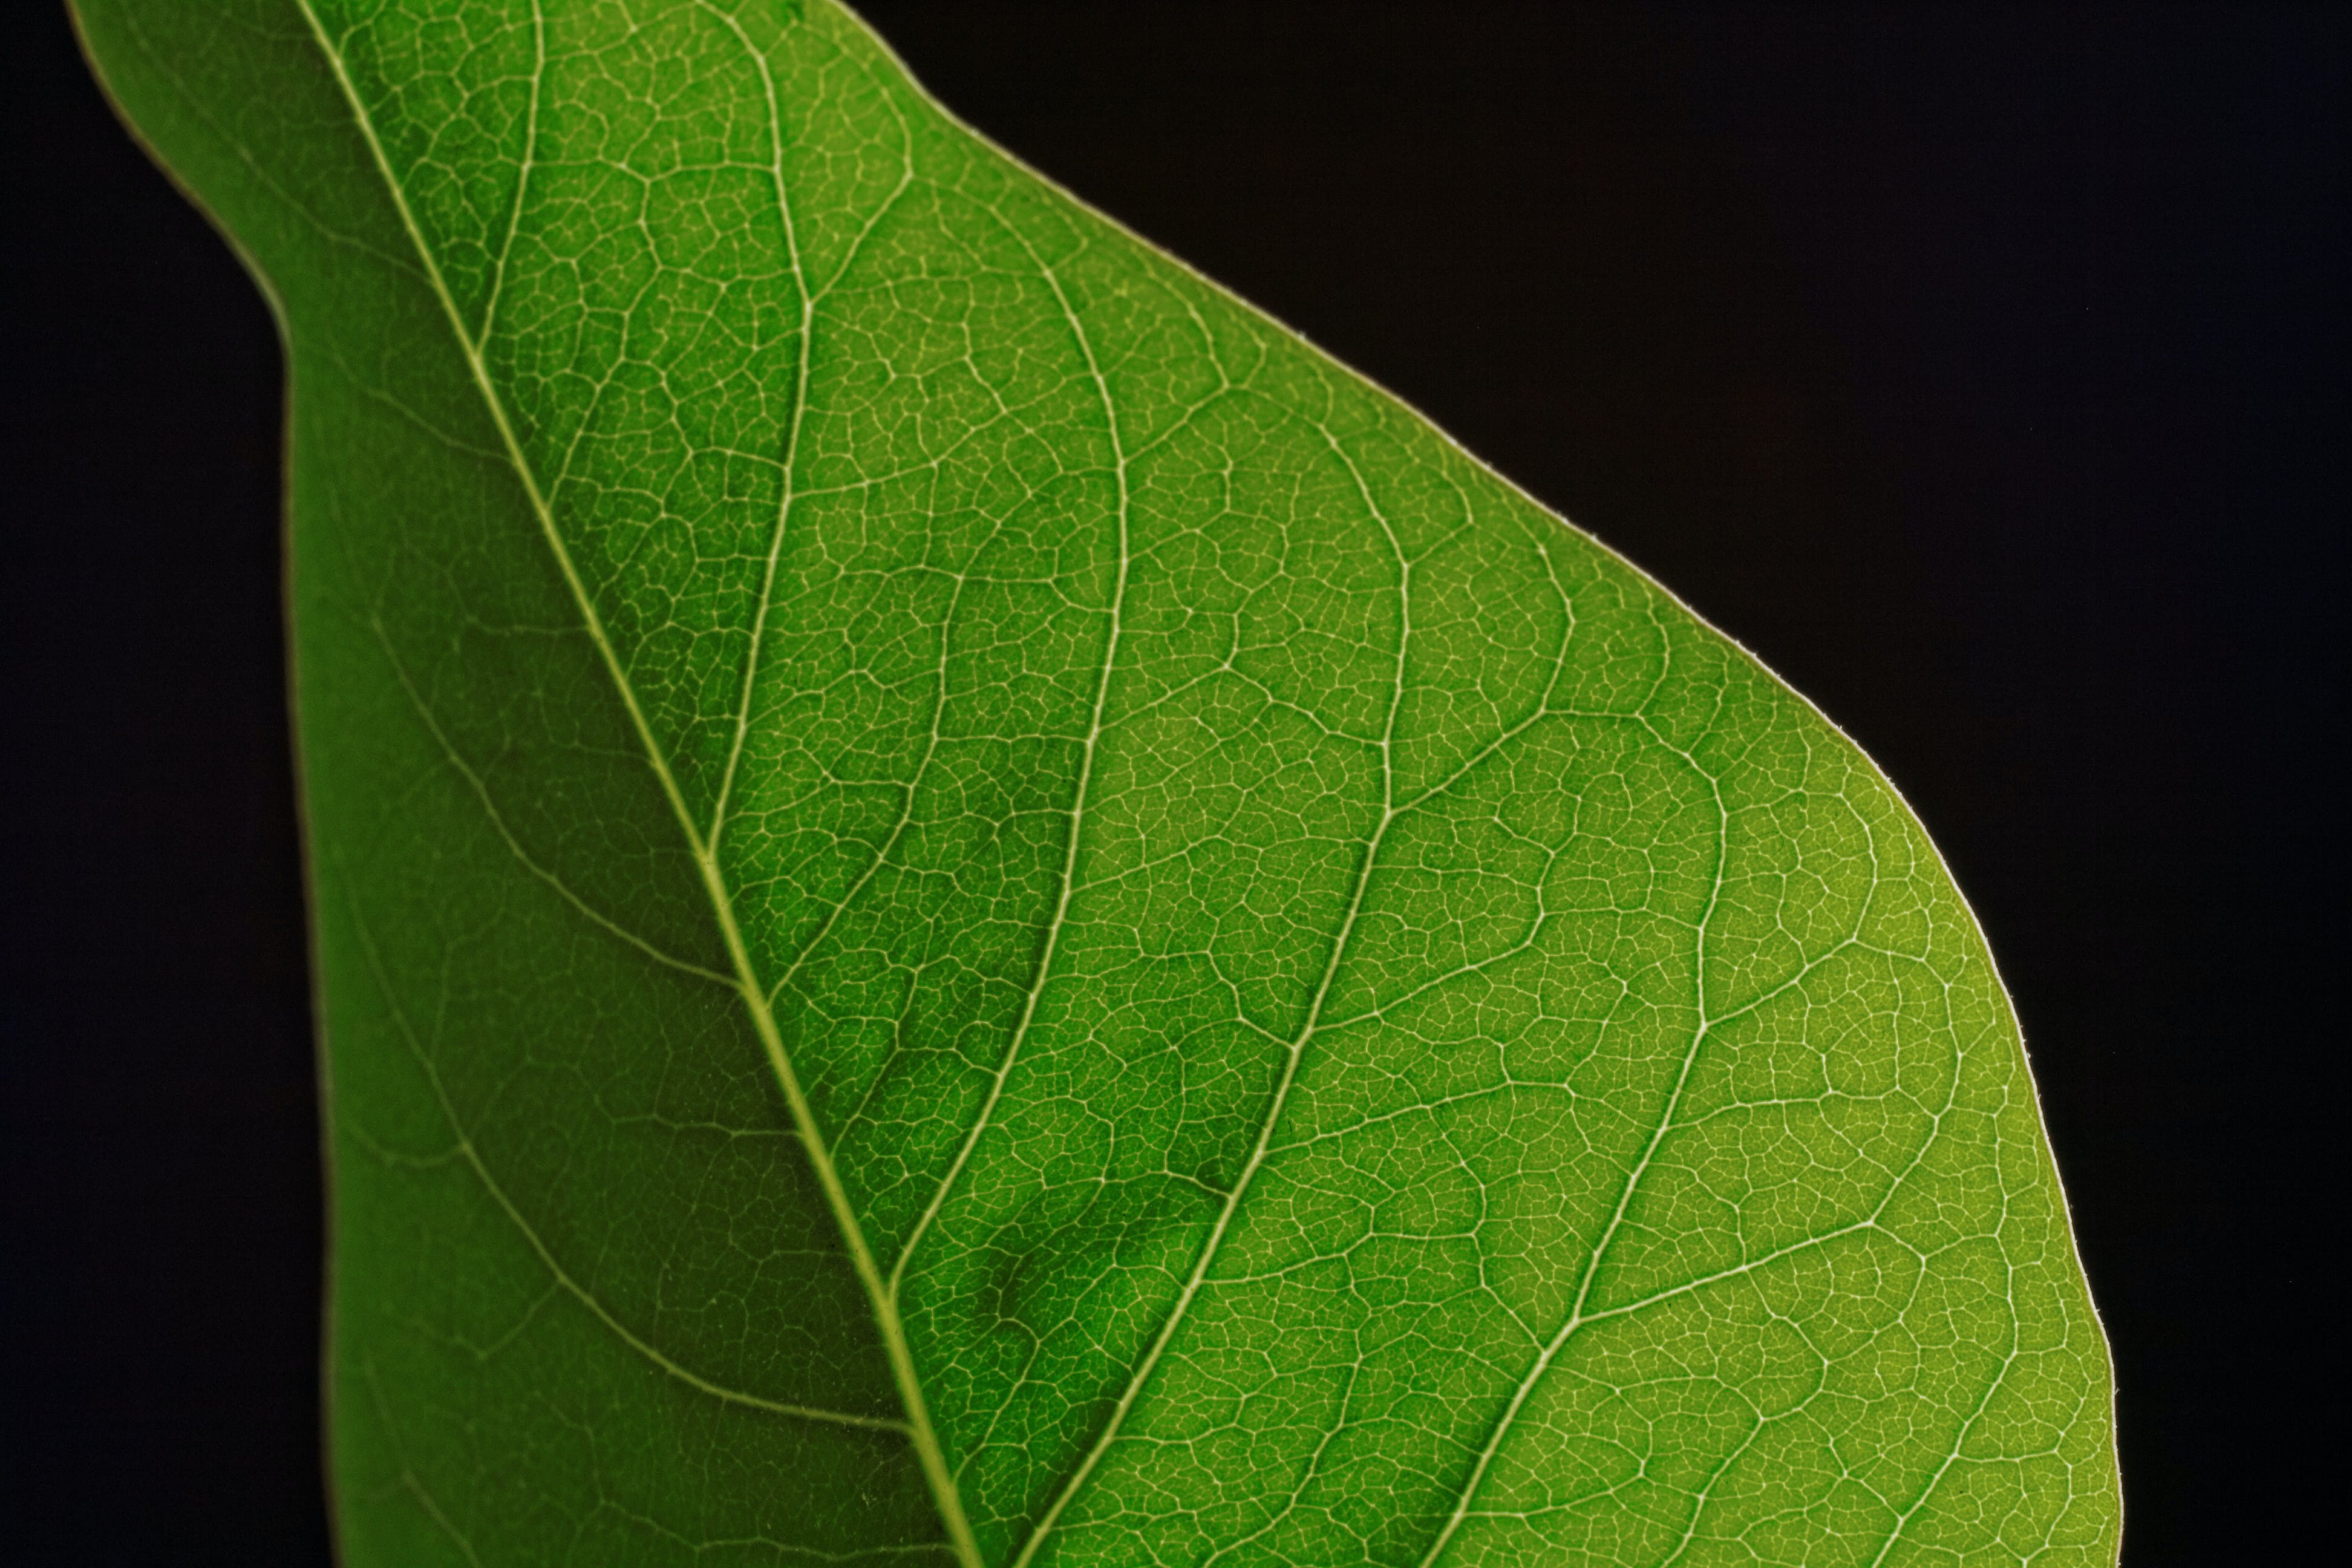 Free stock photo of leaf, green, veins